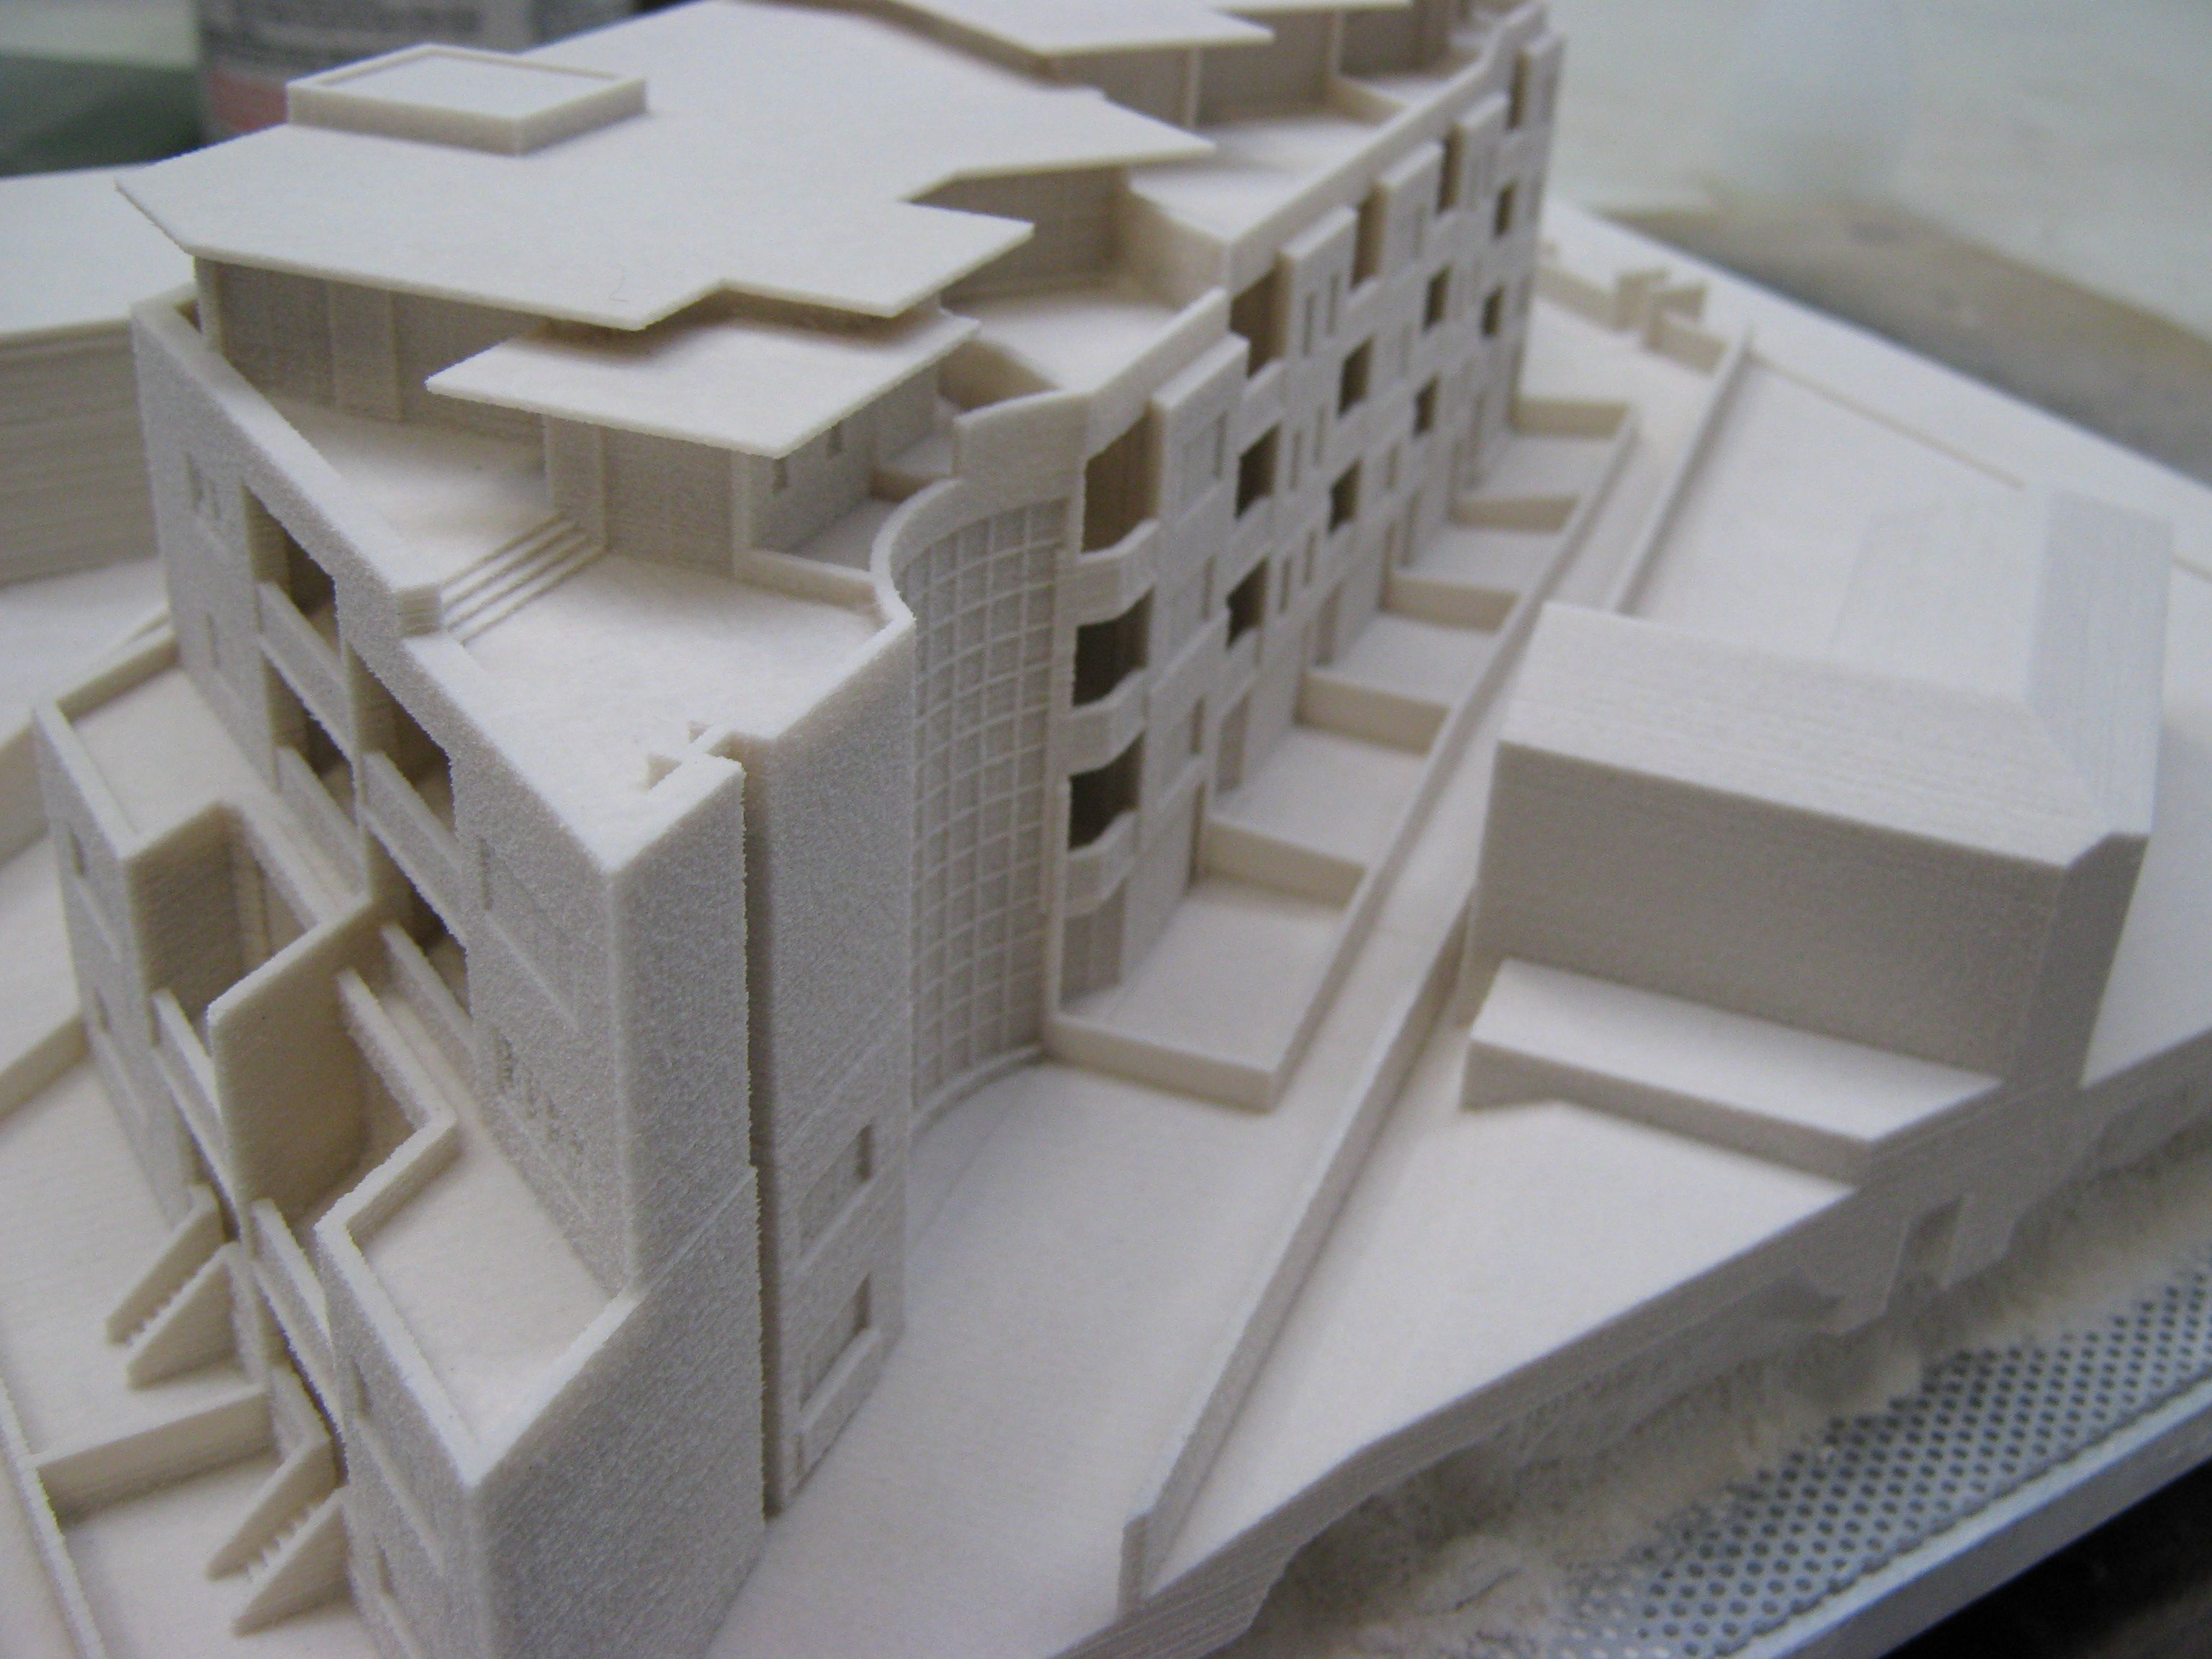 made with 3d printer 3dprintedarchitecture 3d printed